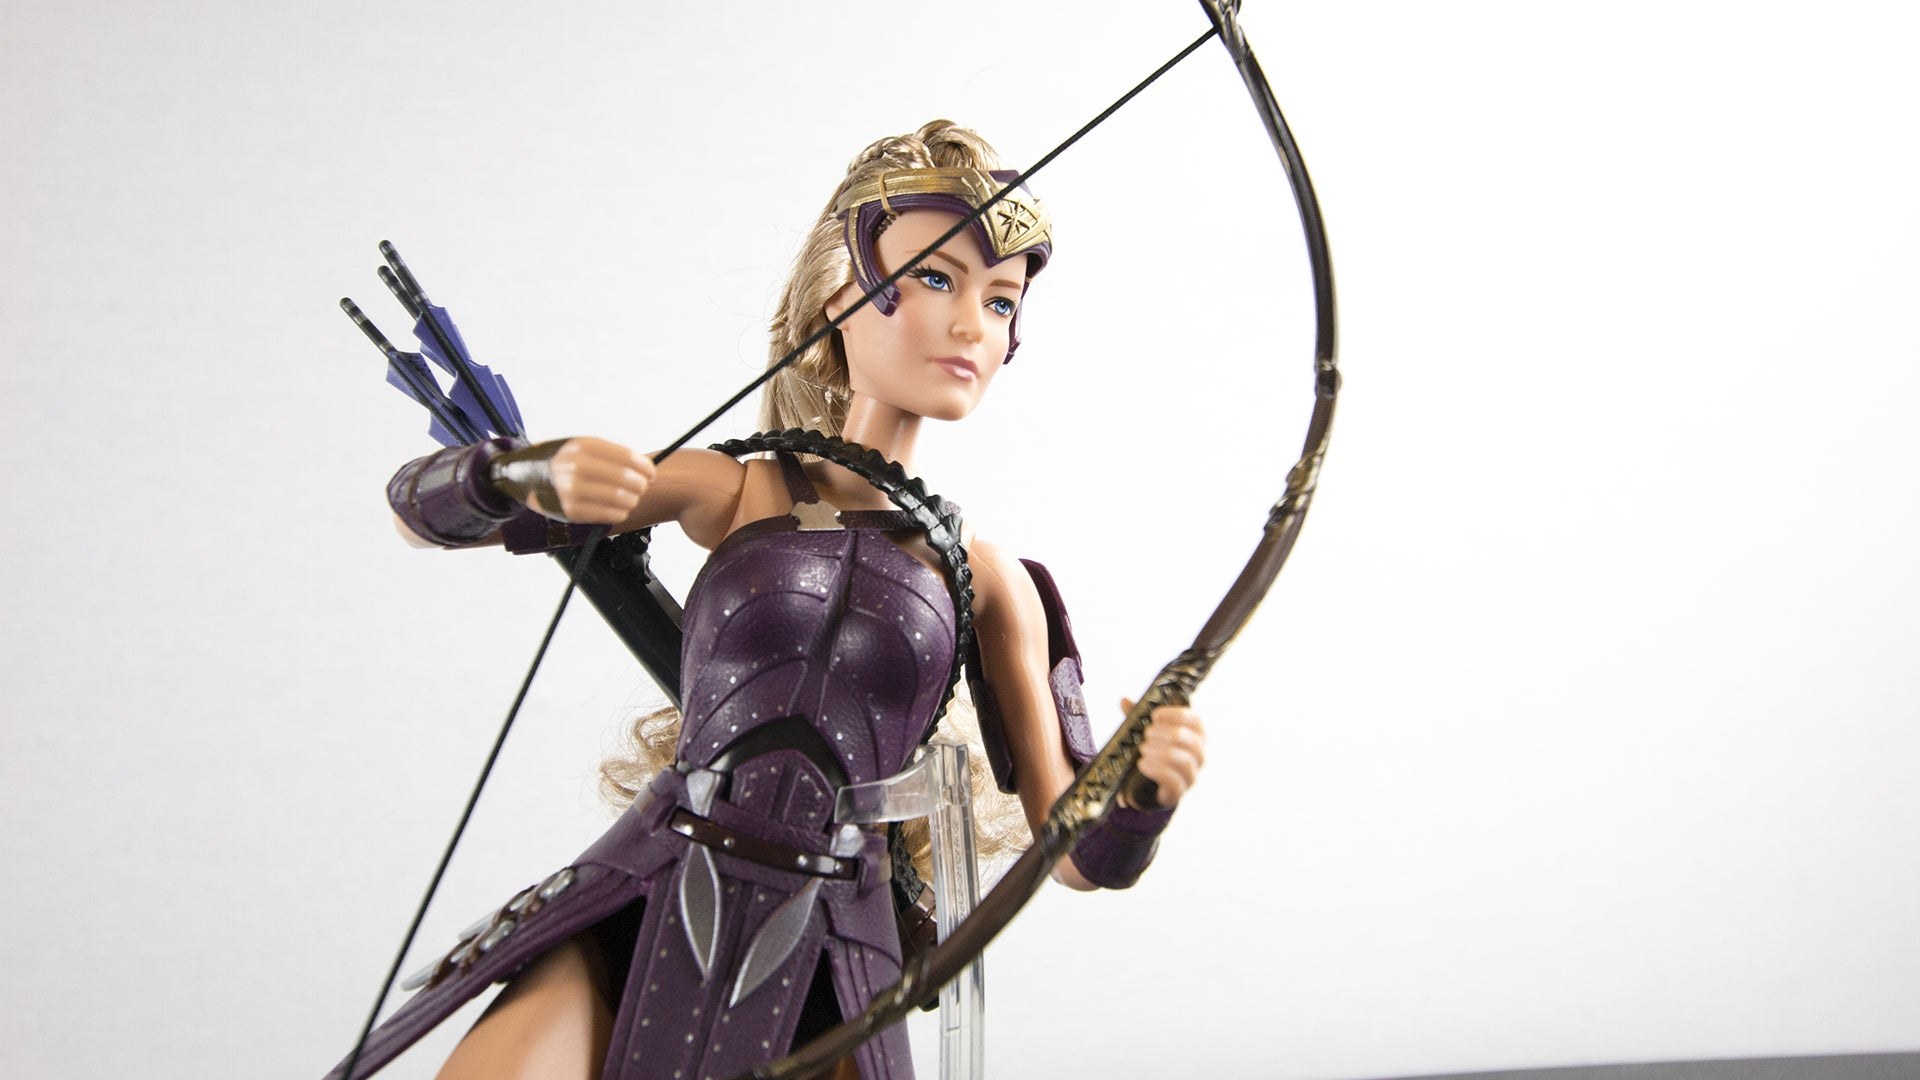 Doll review 2017 black label queen hippolyta doll face three - Sadly The Arrows Seem To Be Stuck In The Quiver But There S Only So Much Those Tiny Doll Hands Can Get Done